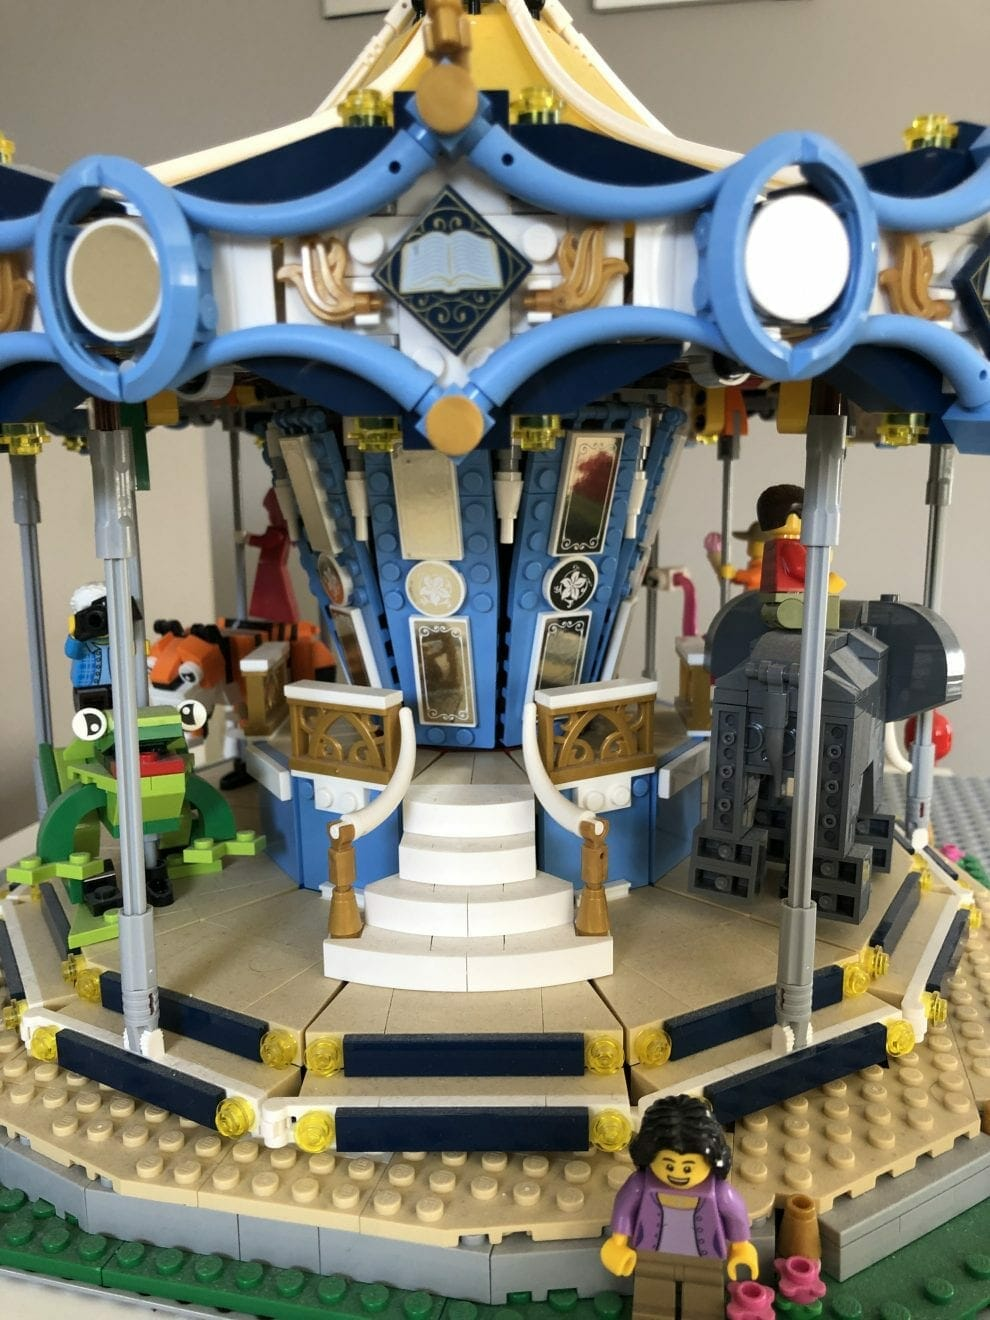 Lego set built in honor of Eli-Grace, contributed by mother Esther